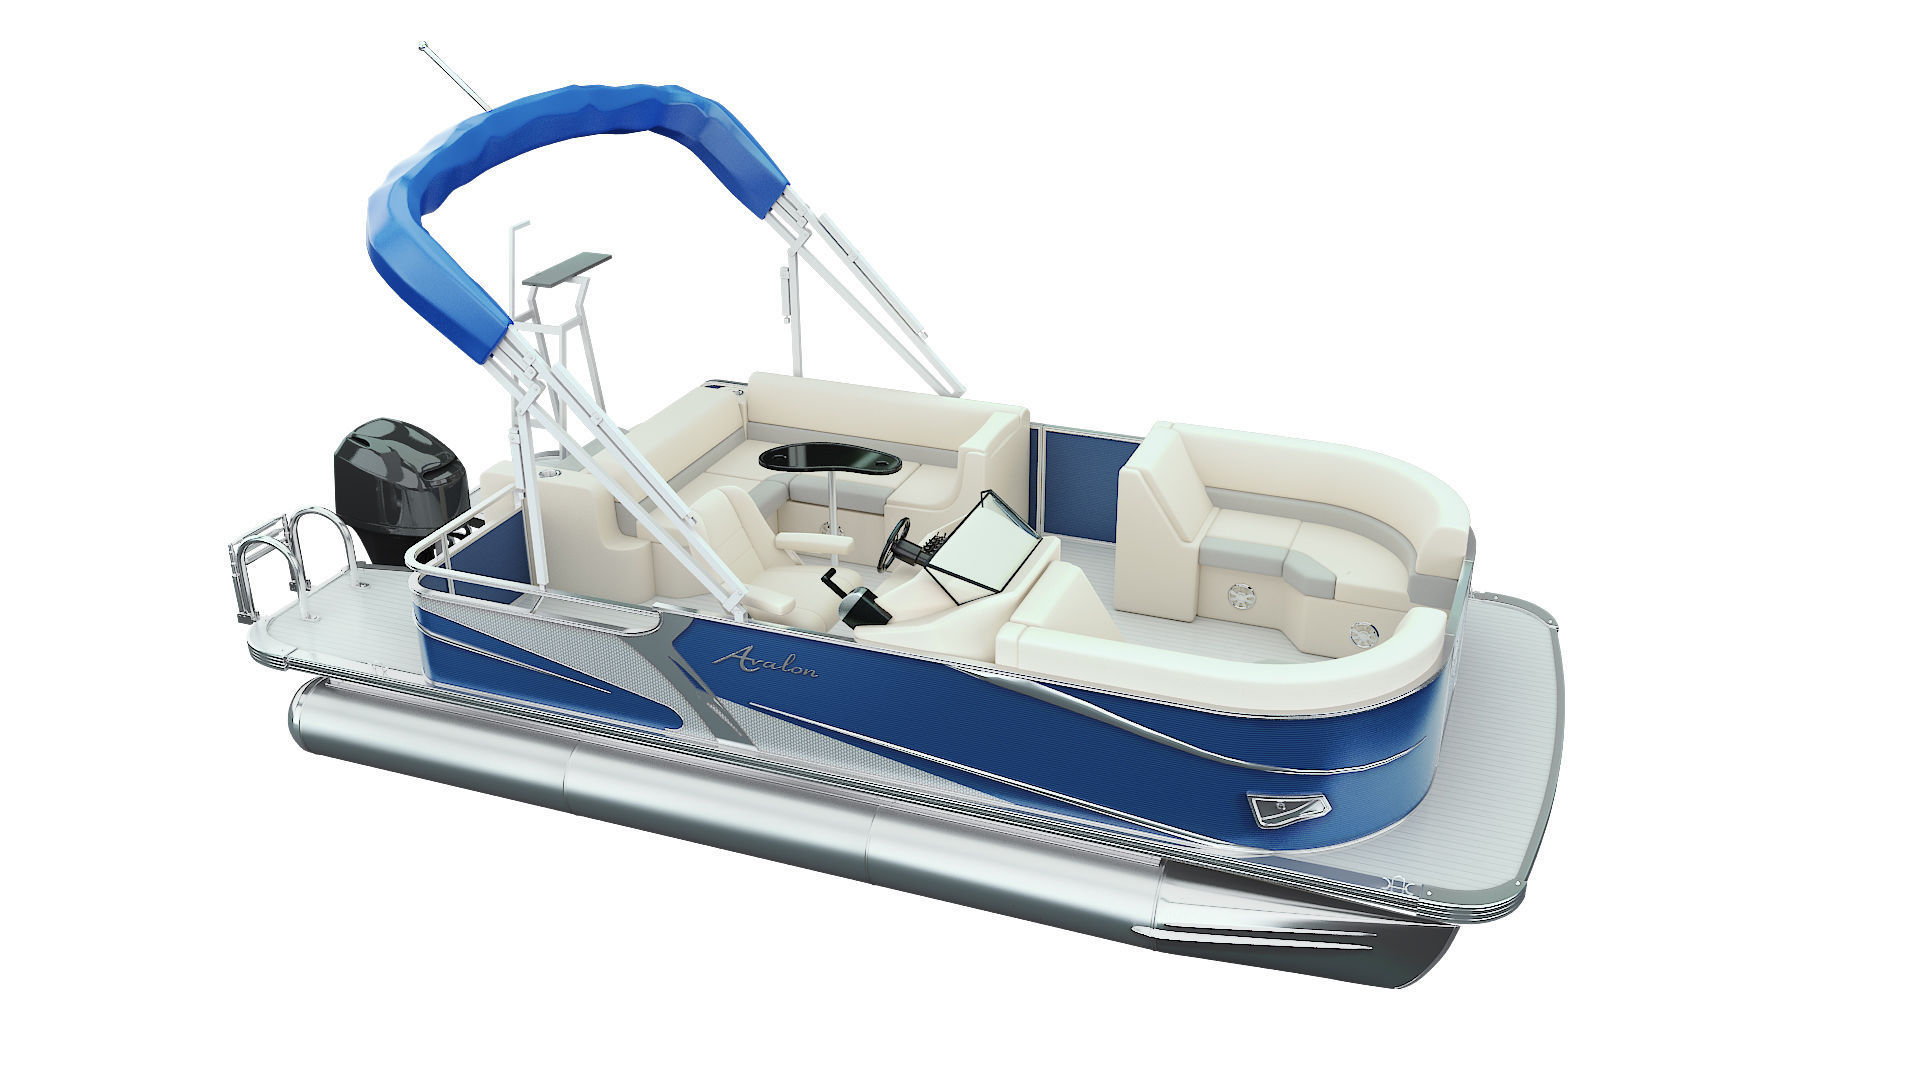 Pontoon Boat | 3D model